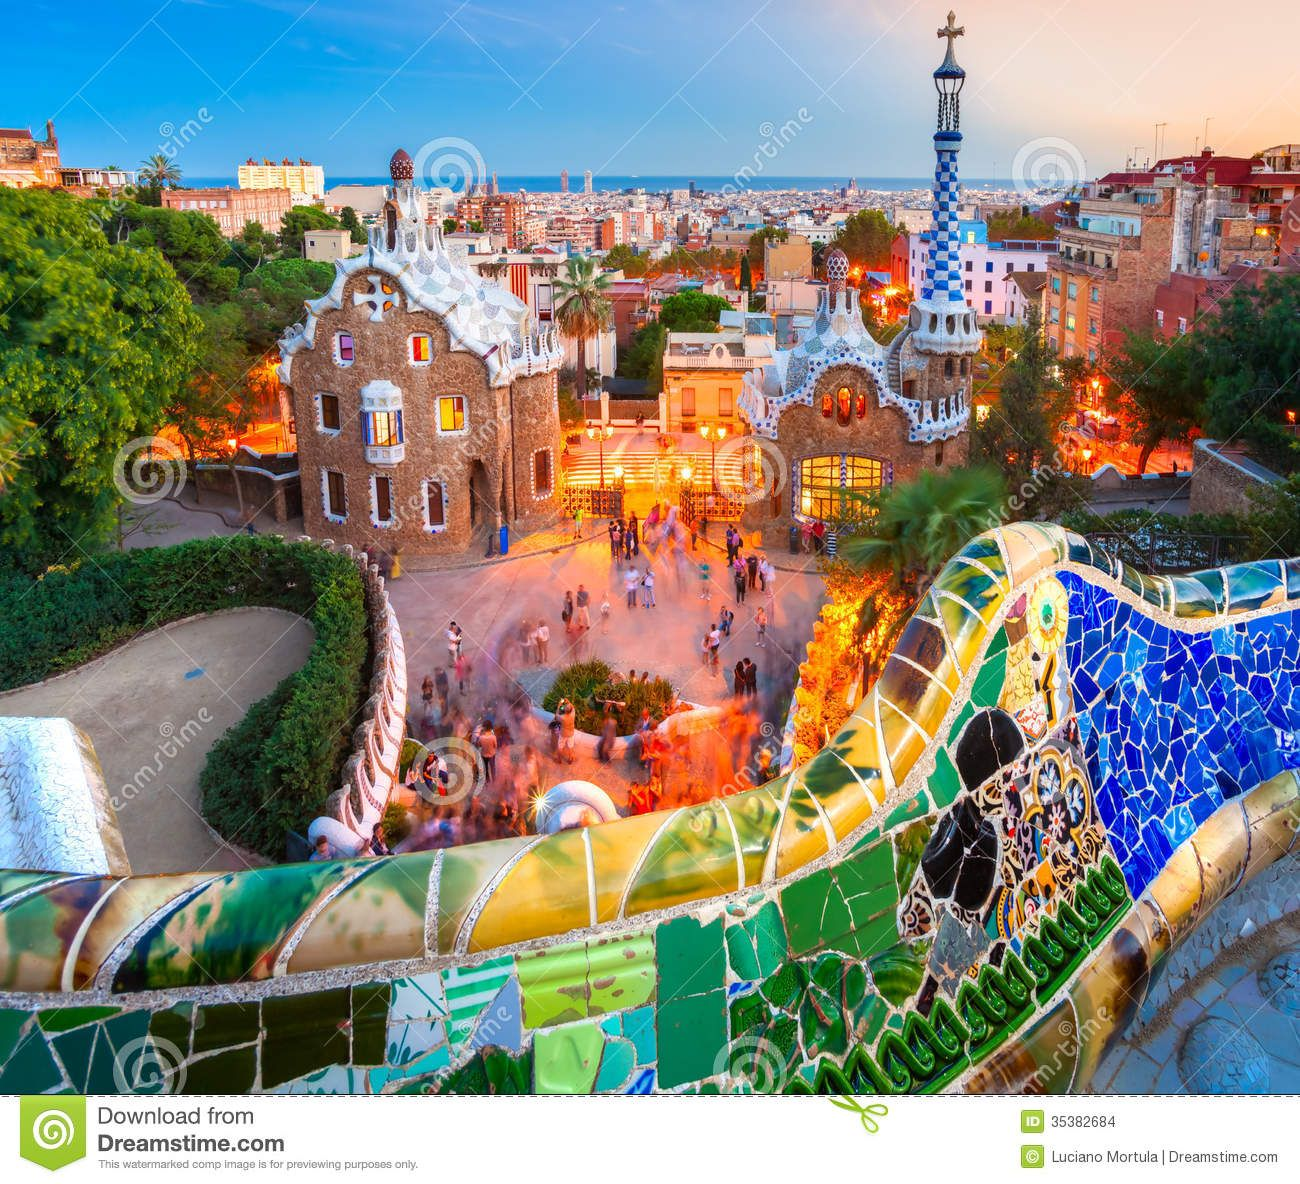 park guell in barcelona spain travel barcelona travel best cities in spain wanderlust travel. Black Bedroom Furniture Sets. Home Design Ideas